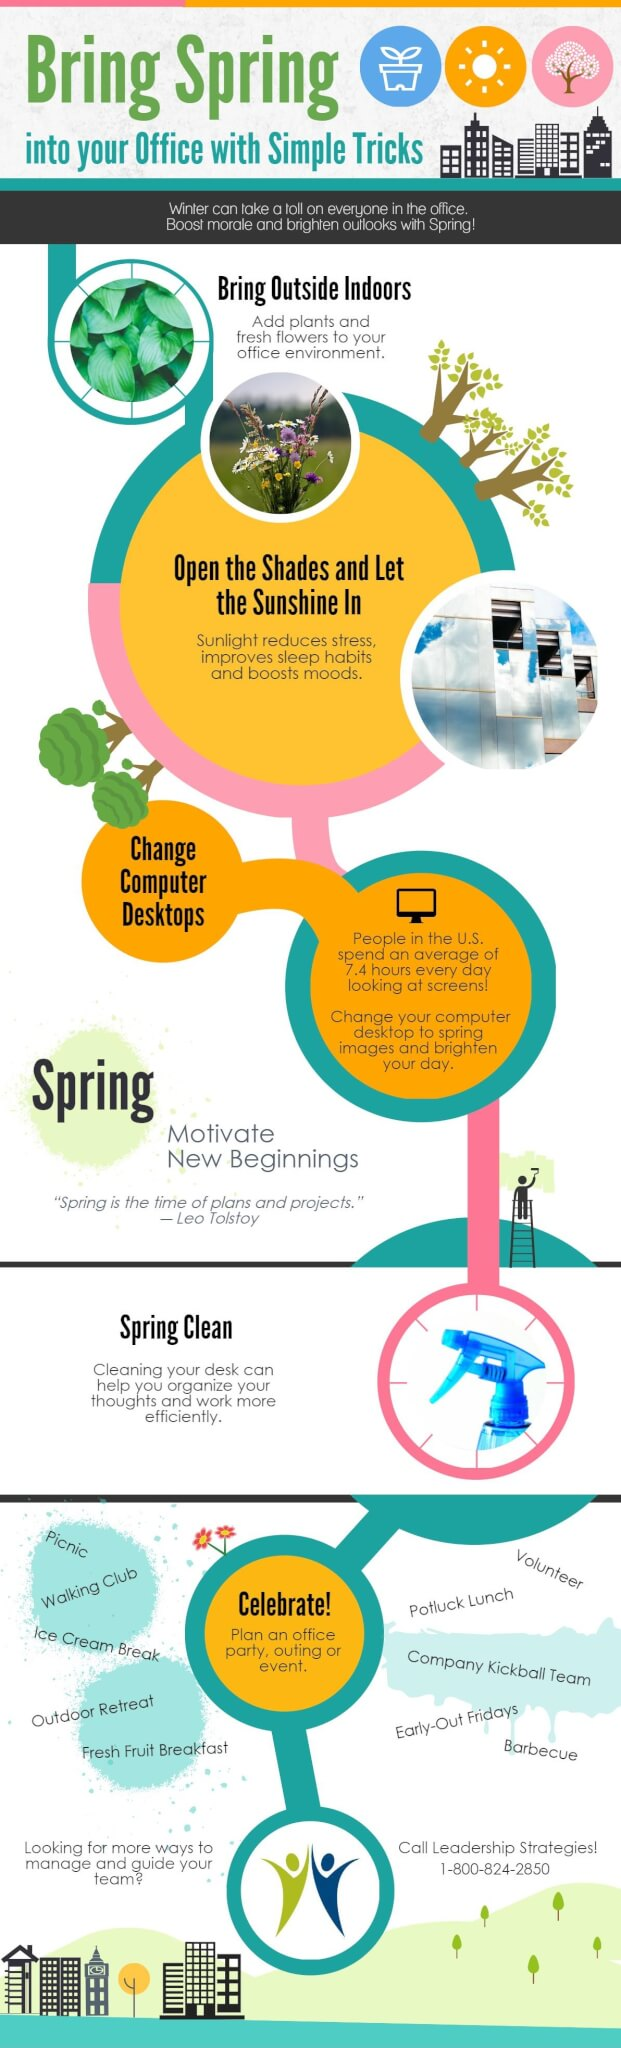 spring, in your office